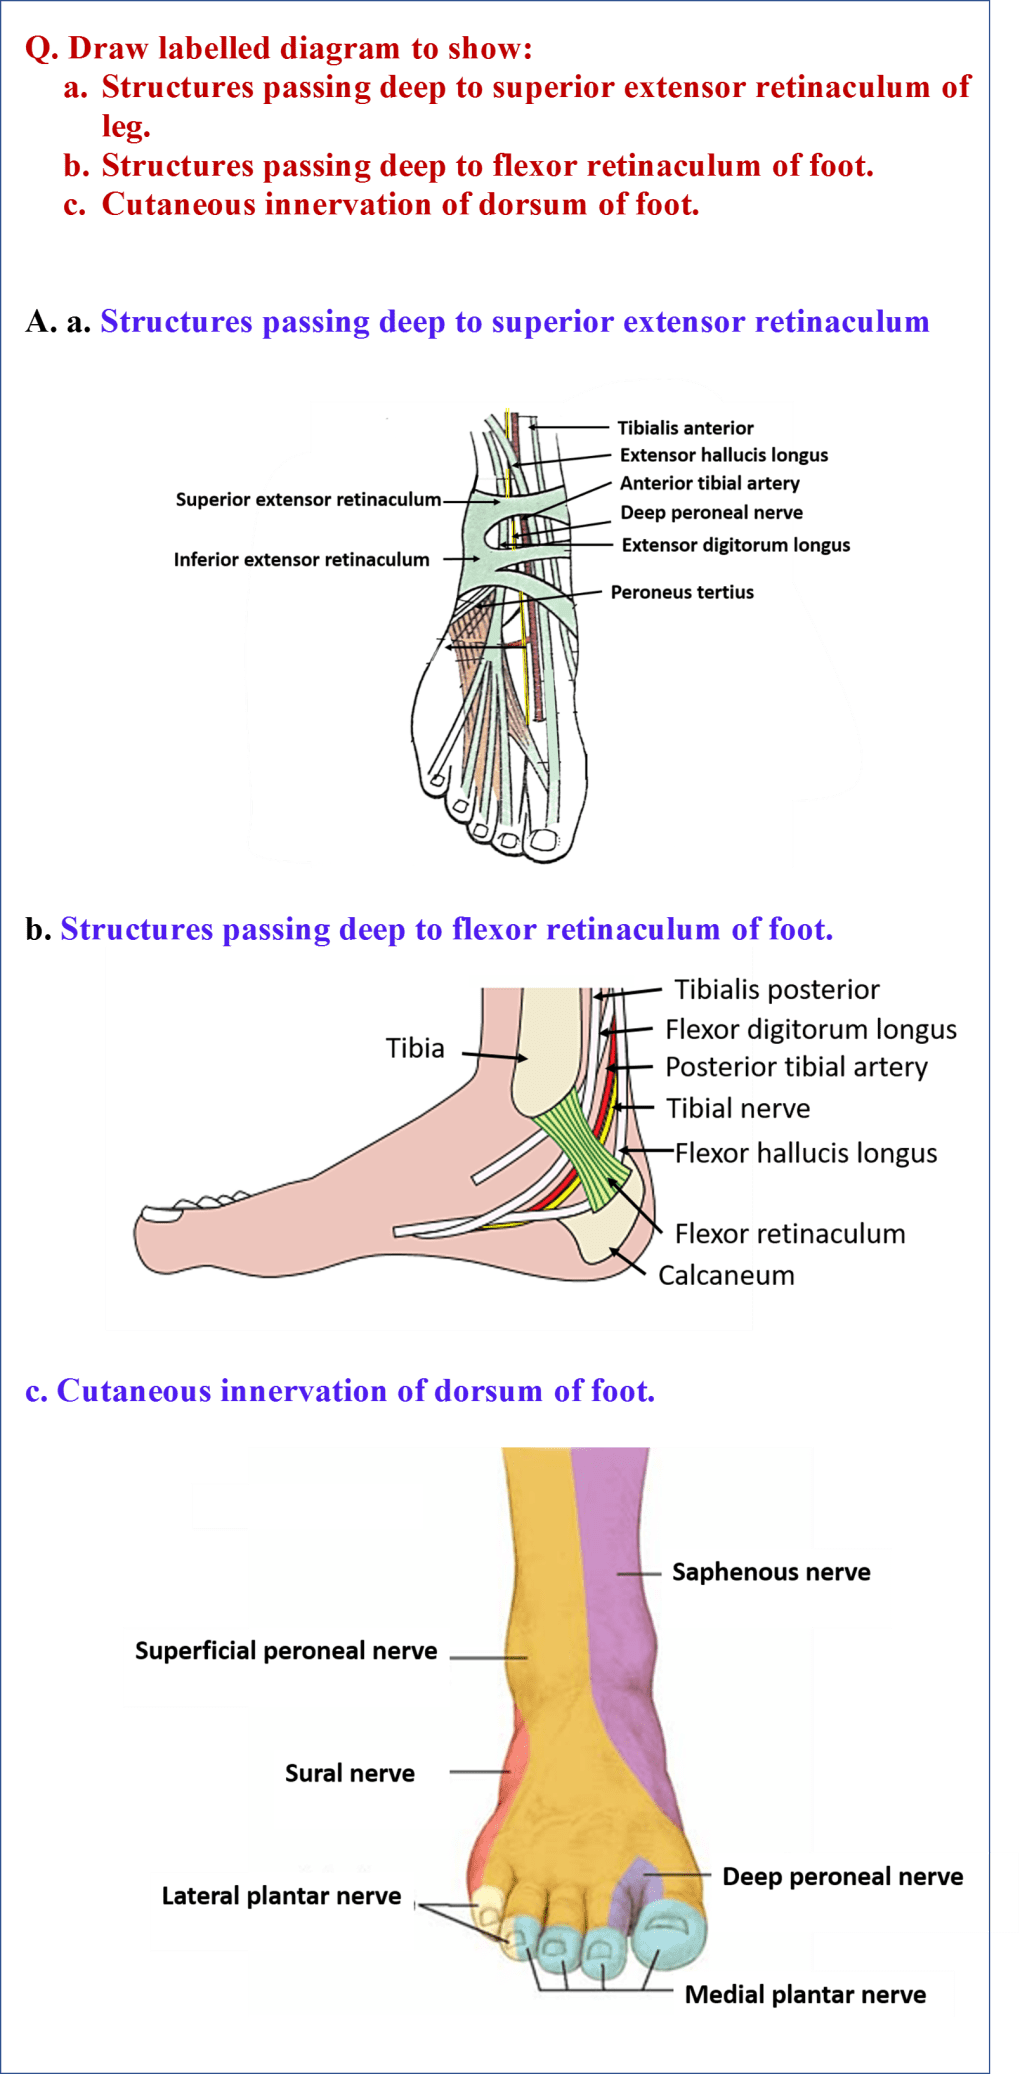 Diagrams Showing Structures Passing Deep to Extensor and Flexor Retinacula of foot & Cutaneous Innervation of Dorsum of Foot